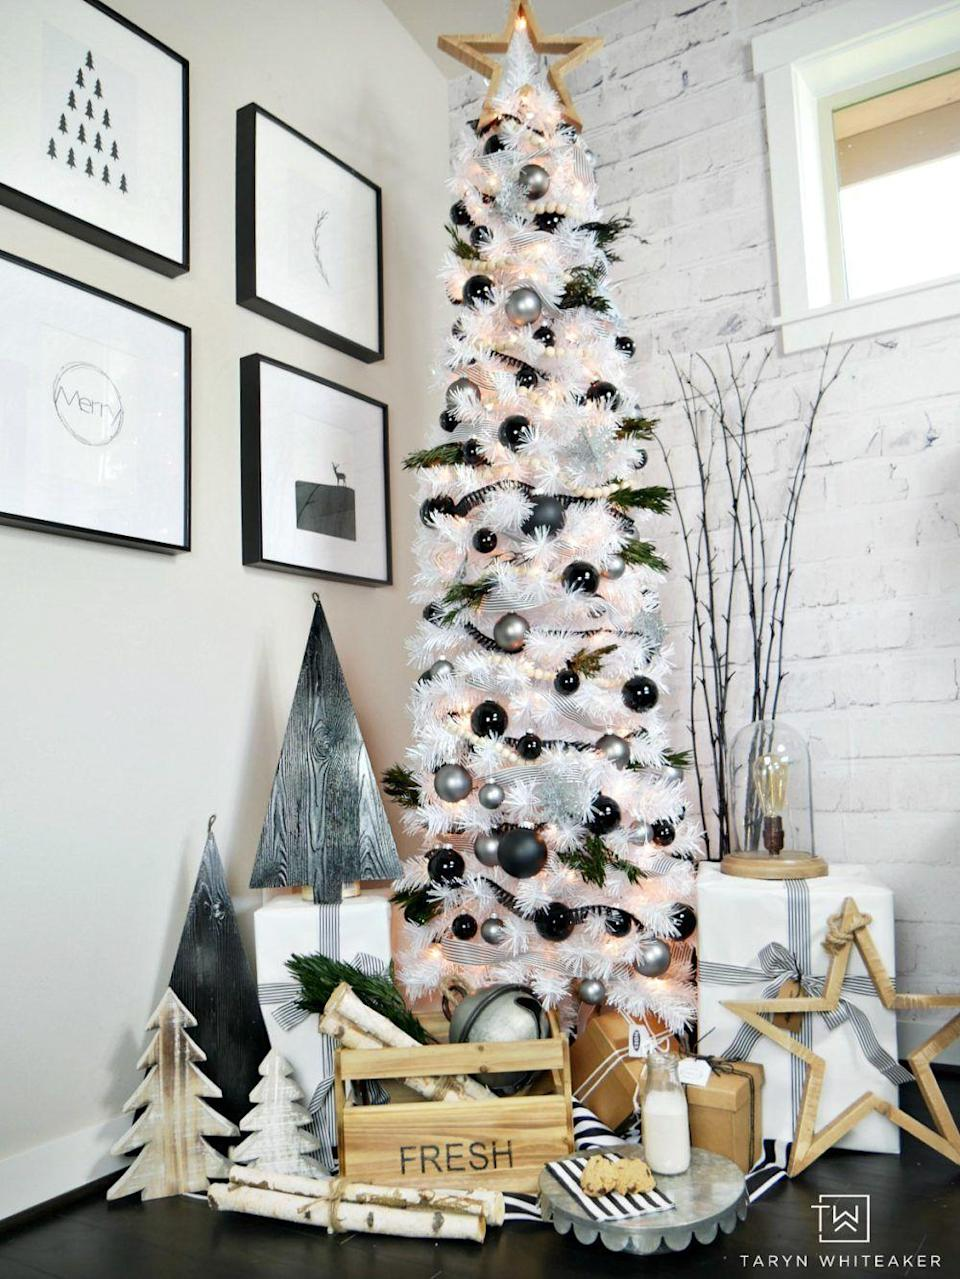 """<p>Full of clean black-and-white lines mixed with rustic touches, this tree couldn't be trendier. </p><p><strong><em>Get the tutorial at <a href=""""https://tarynwhiteaker.com/modern-black-white-christmas-tree/"""" rel=""""nofollow noopener"""" target=""""_blank"""" data-ylk=""""slk:Taryn Whiteaker Designs"""" class=""""link rapid-noclick-resp"""">Taryn Whiteaker Designs</a>. </em></strong></p><p><a class=""""link rapid-noclick-resp"""" href=""""https://www.amazon.com/Syhood-Garland-Farmhouse-Christmas-Decorations/dp/B08JJ7VKWR?tag=syn-yahoo-20&ascsubtag=%5Bartid%7C10070.g.2025%5Bsrc%7Cyahoo-us"""" rel=""""nofollow noopener"""" target=""""_blank"""" data-ylk=""""slk:SHOP WOOD BEAD GARLAND"""">SHOP WOOD BEAD GARLAND</a></p>"""